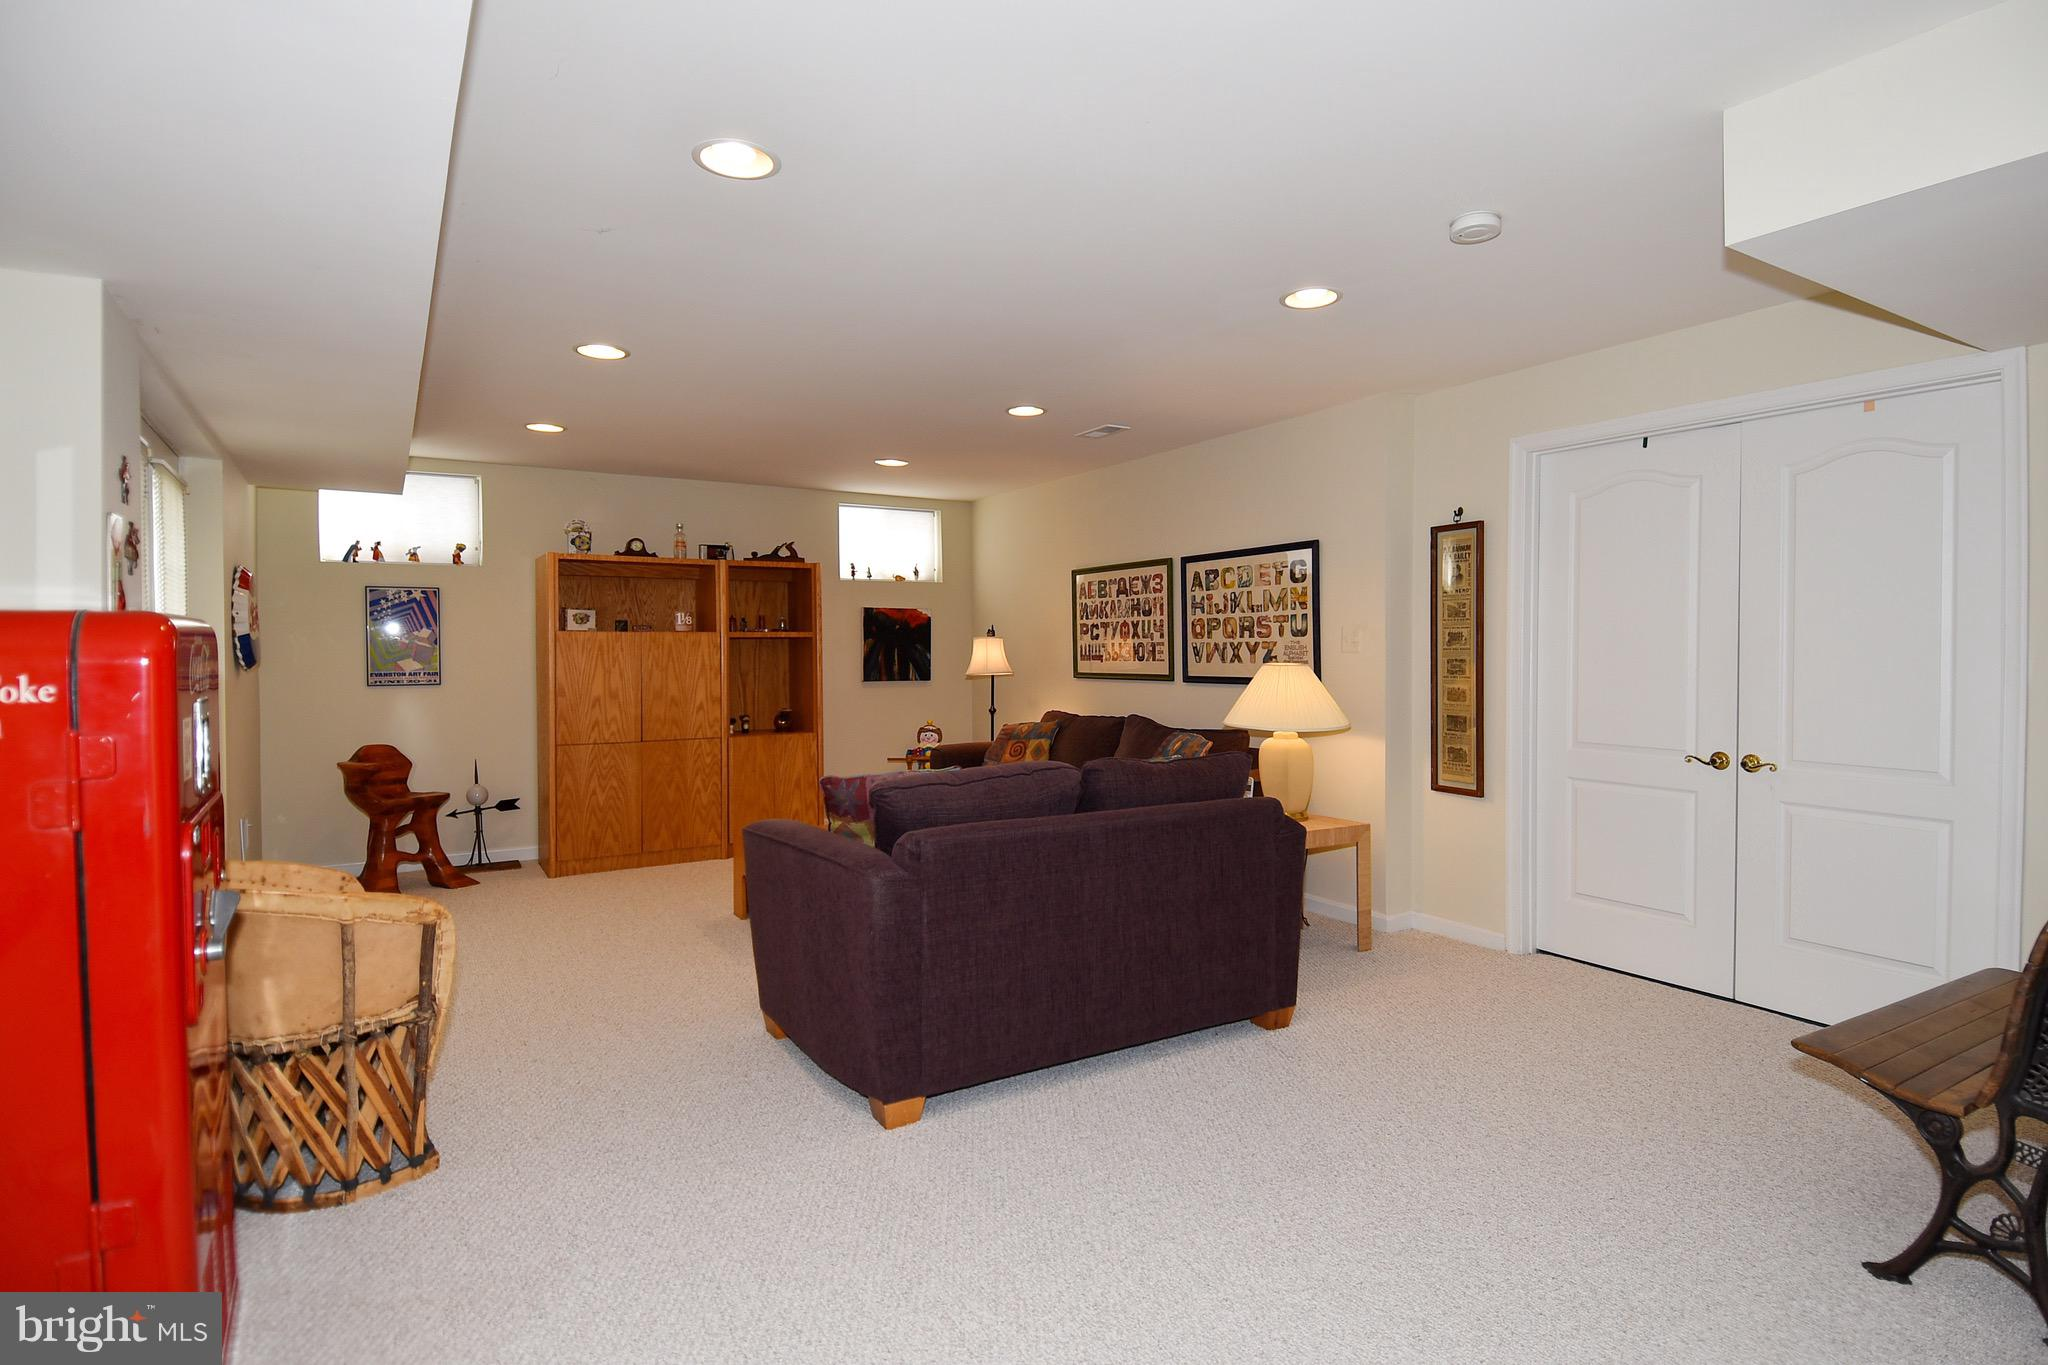 21408 Glebe View Drive, Broadlands, VA 20148 - SOLD LISTING, MLS # on home bathroom plans, home architecture, group home plans, house plans, home furniture, home hardware plans, home design, family home plans, home apartment plans, 2012 most popular home plans, country kitchen home plans, energy homes plans, michael daily home plans, designing home plans, home roof plans, home security plans, home lighting plans, home plans 1940, home building, garage plans,